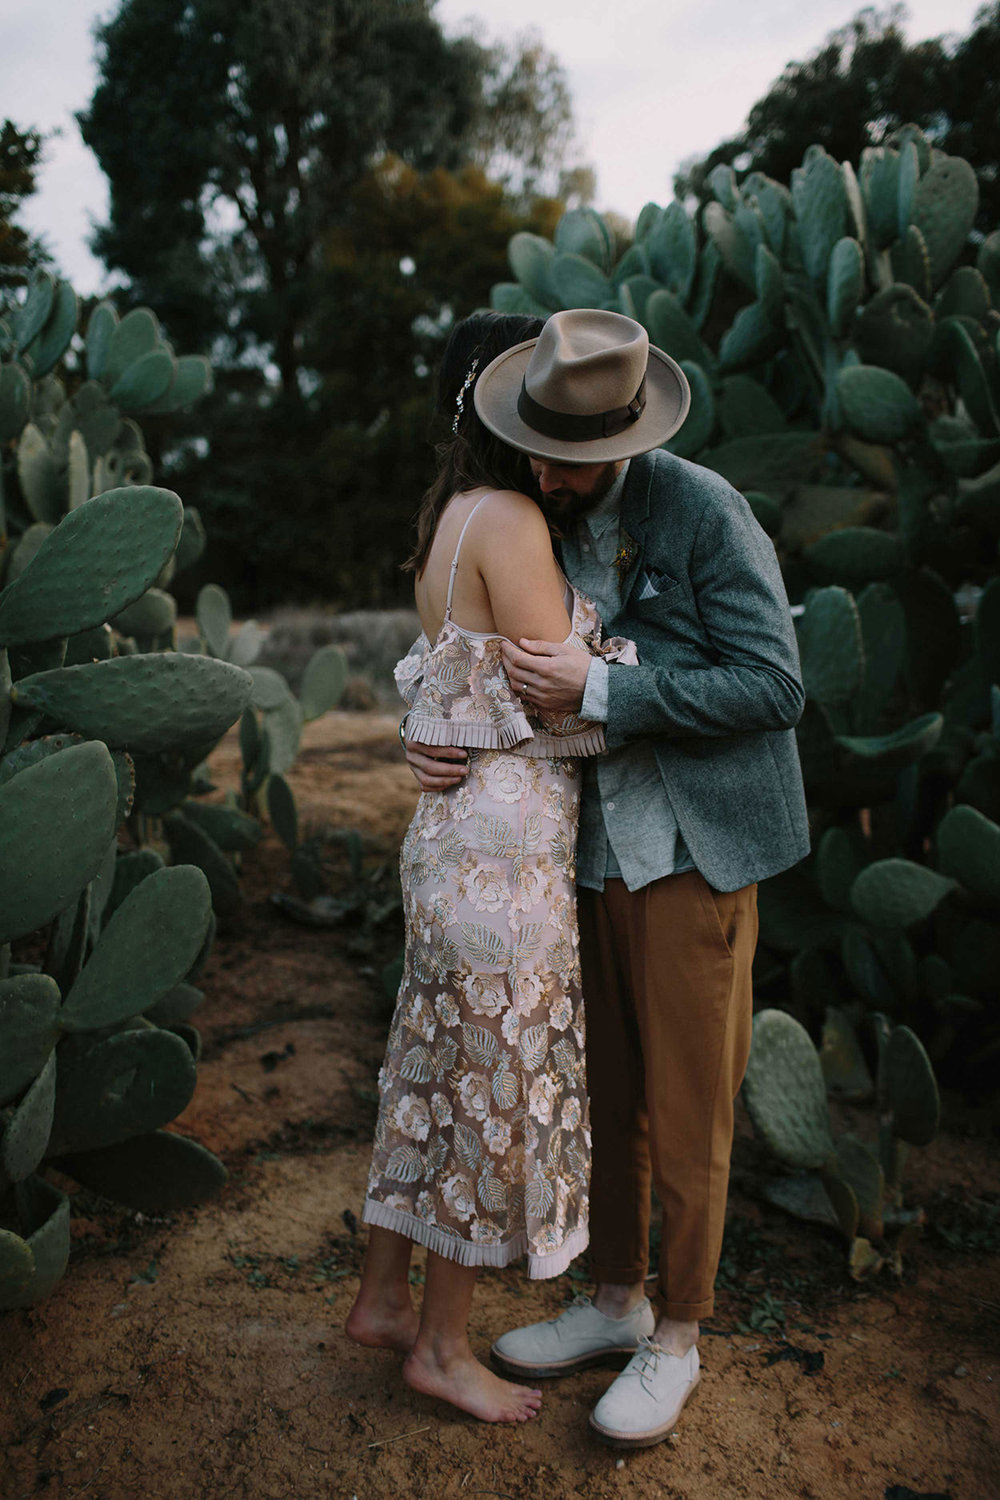 I-Got-You-Babe-Weddings-Cactus-Country-Elopement-Magali-Gabe094.jpg